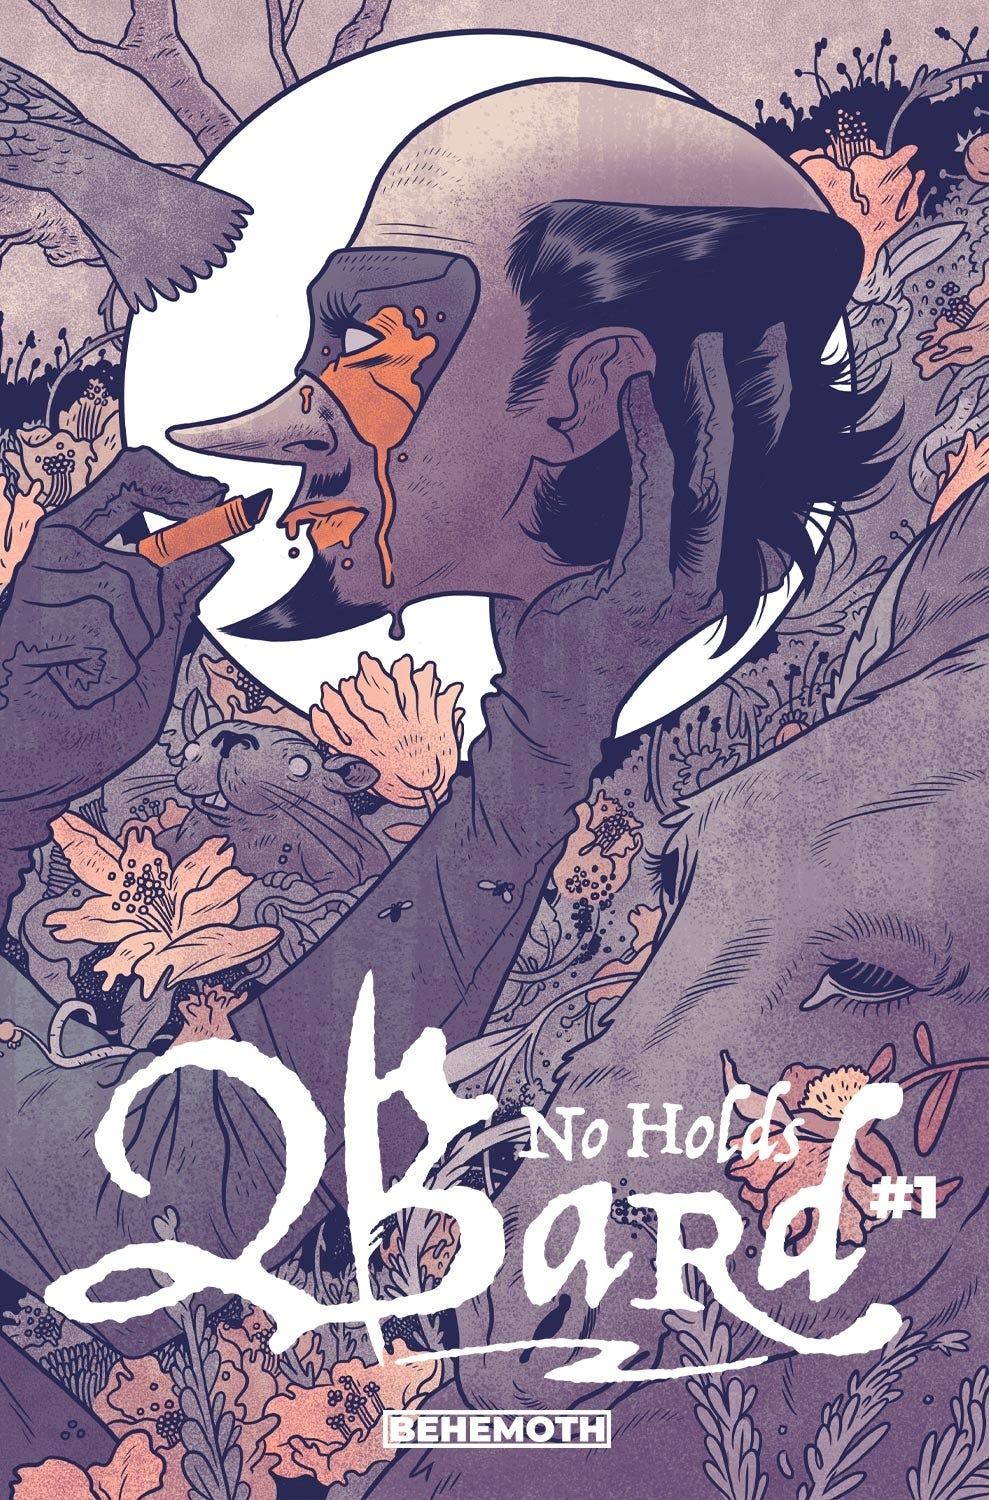 No Holds Bard #1 (of 4) (Cover A - Faerber)